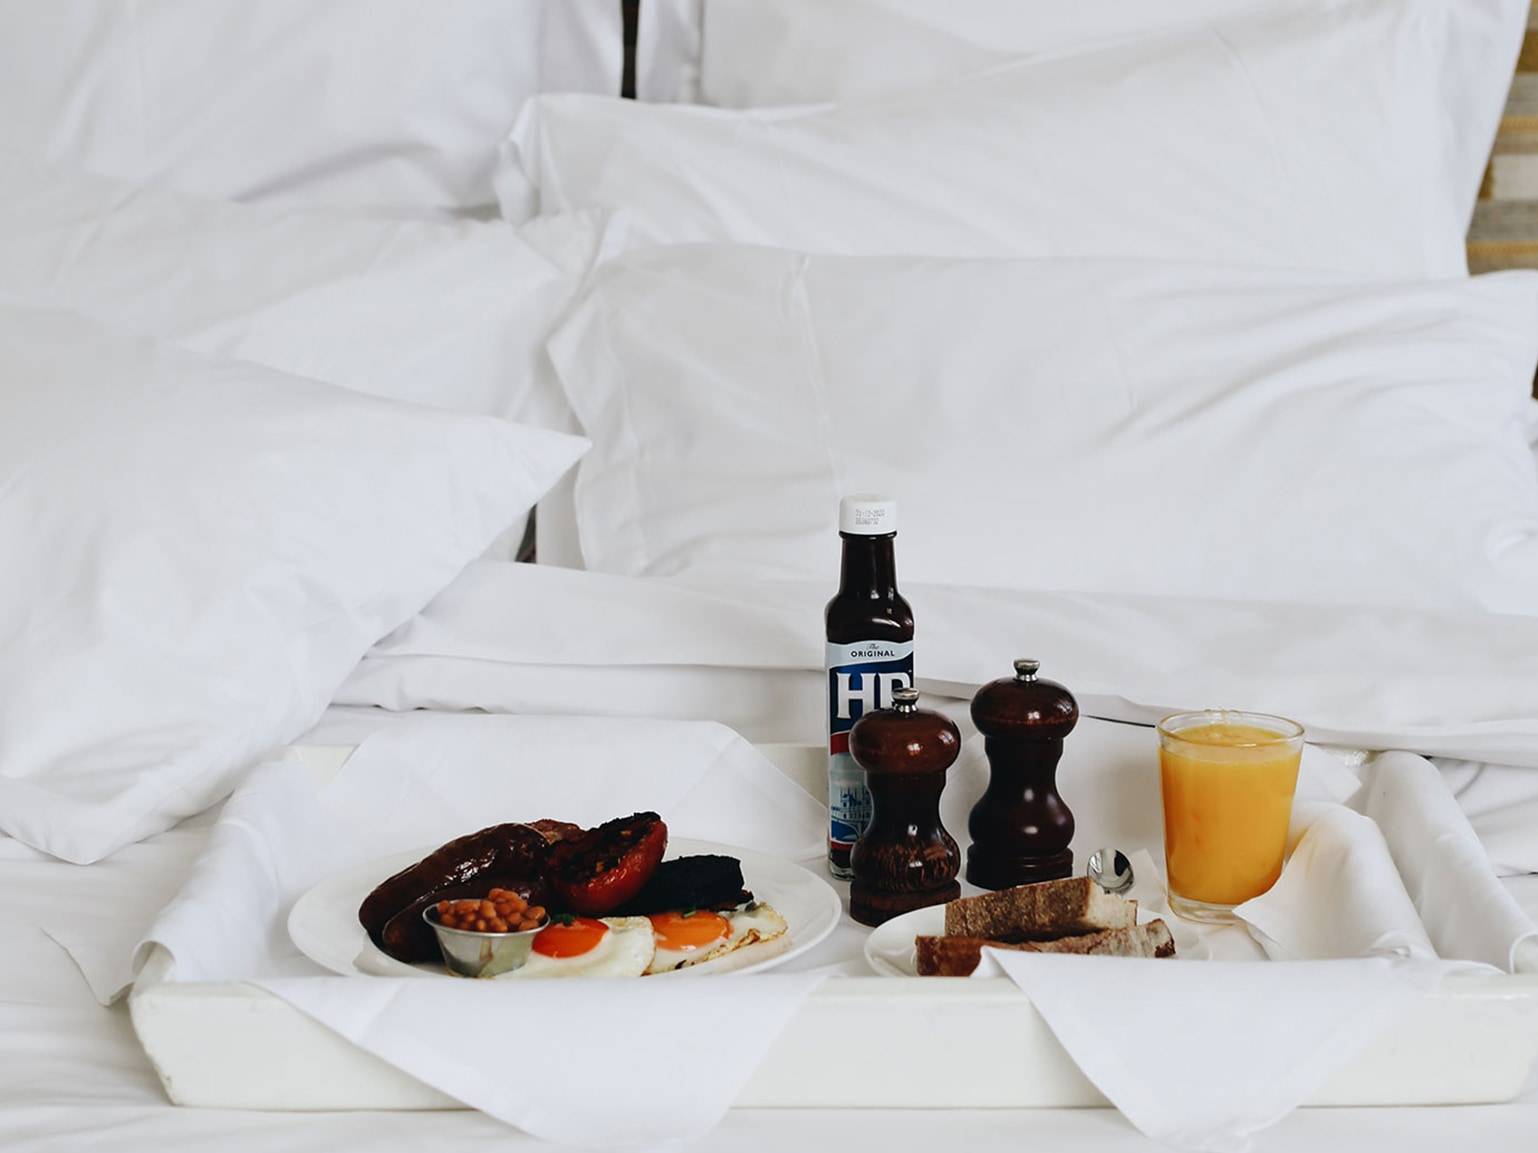 A bed with a room service tray with breakfast on it.